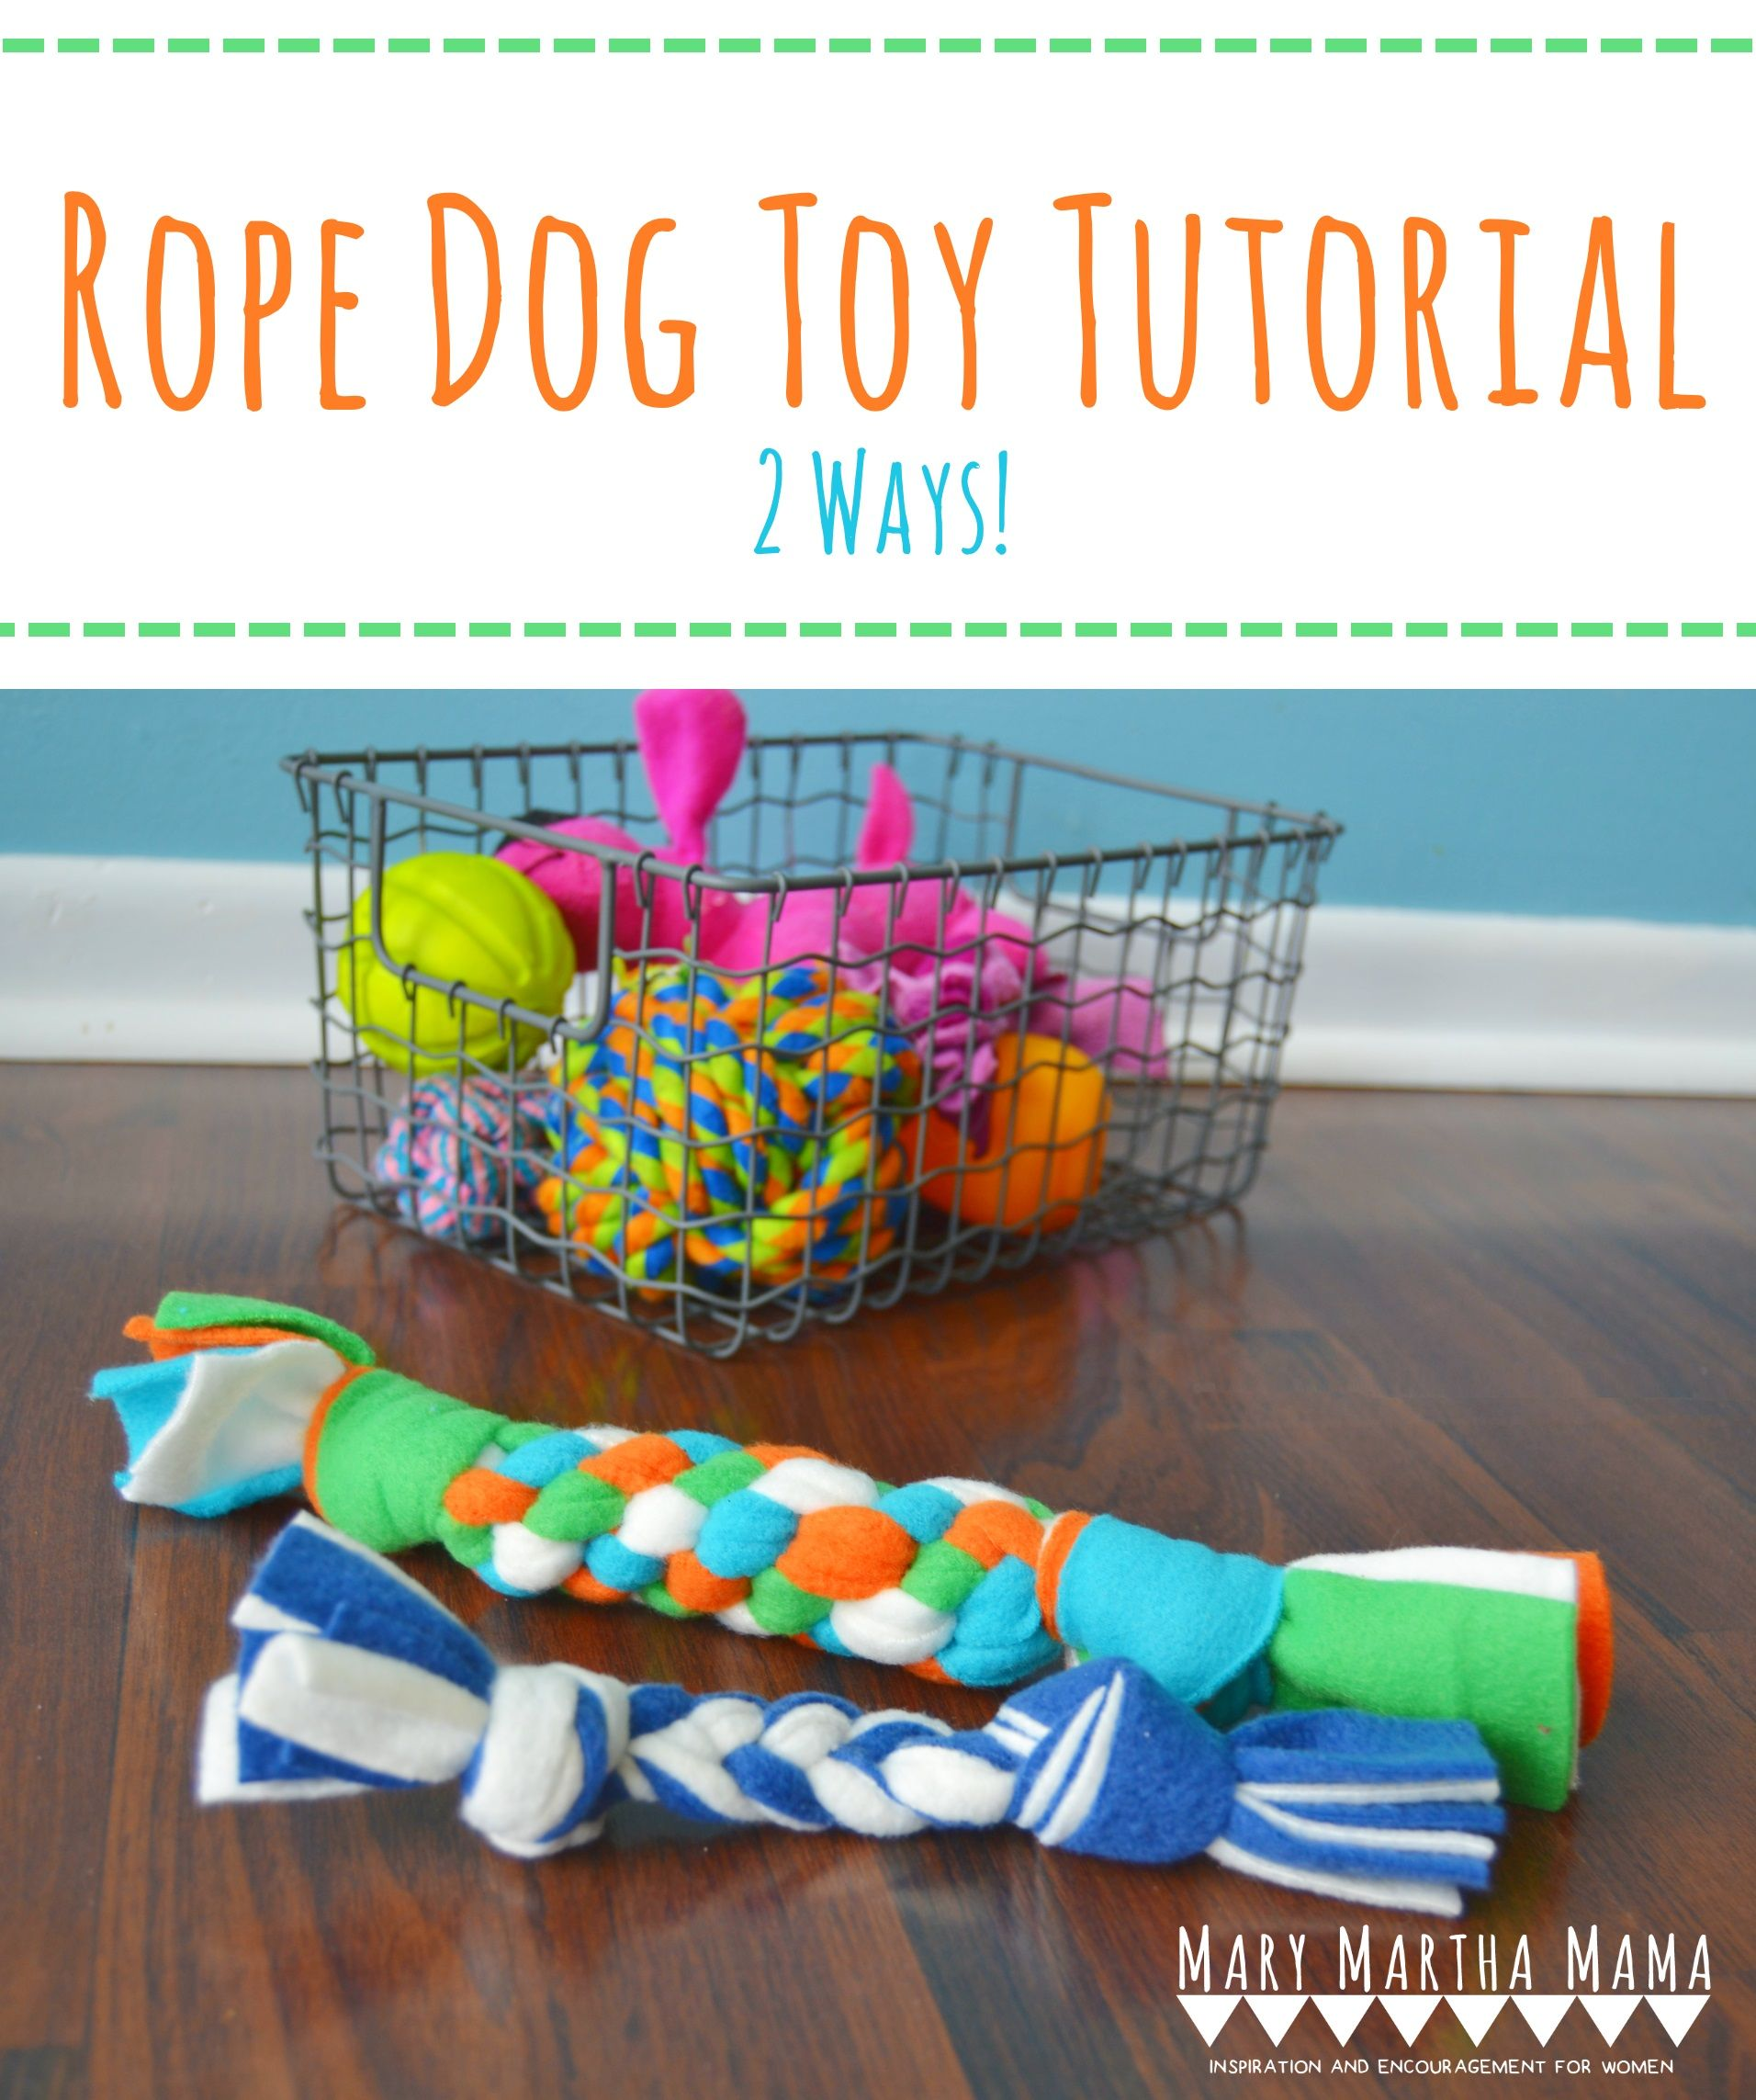 Diy fleece dog toy tutorial how to make your own dog toys using